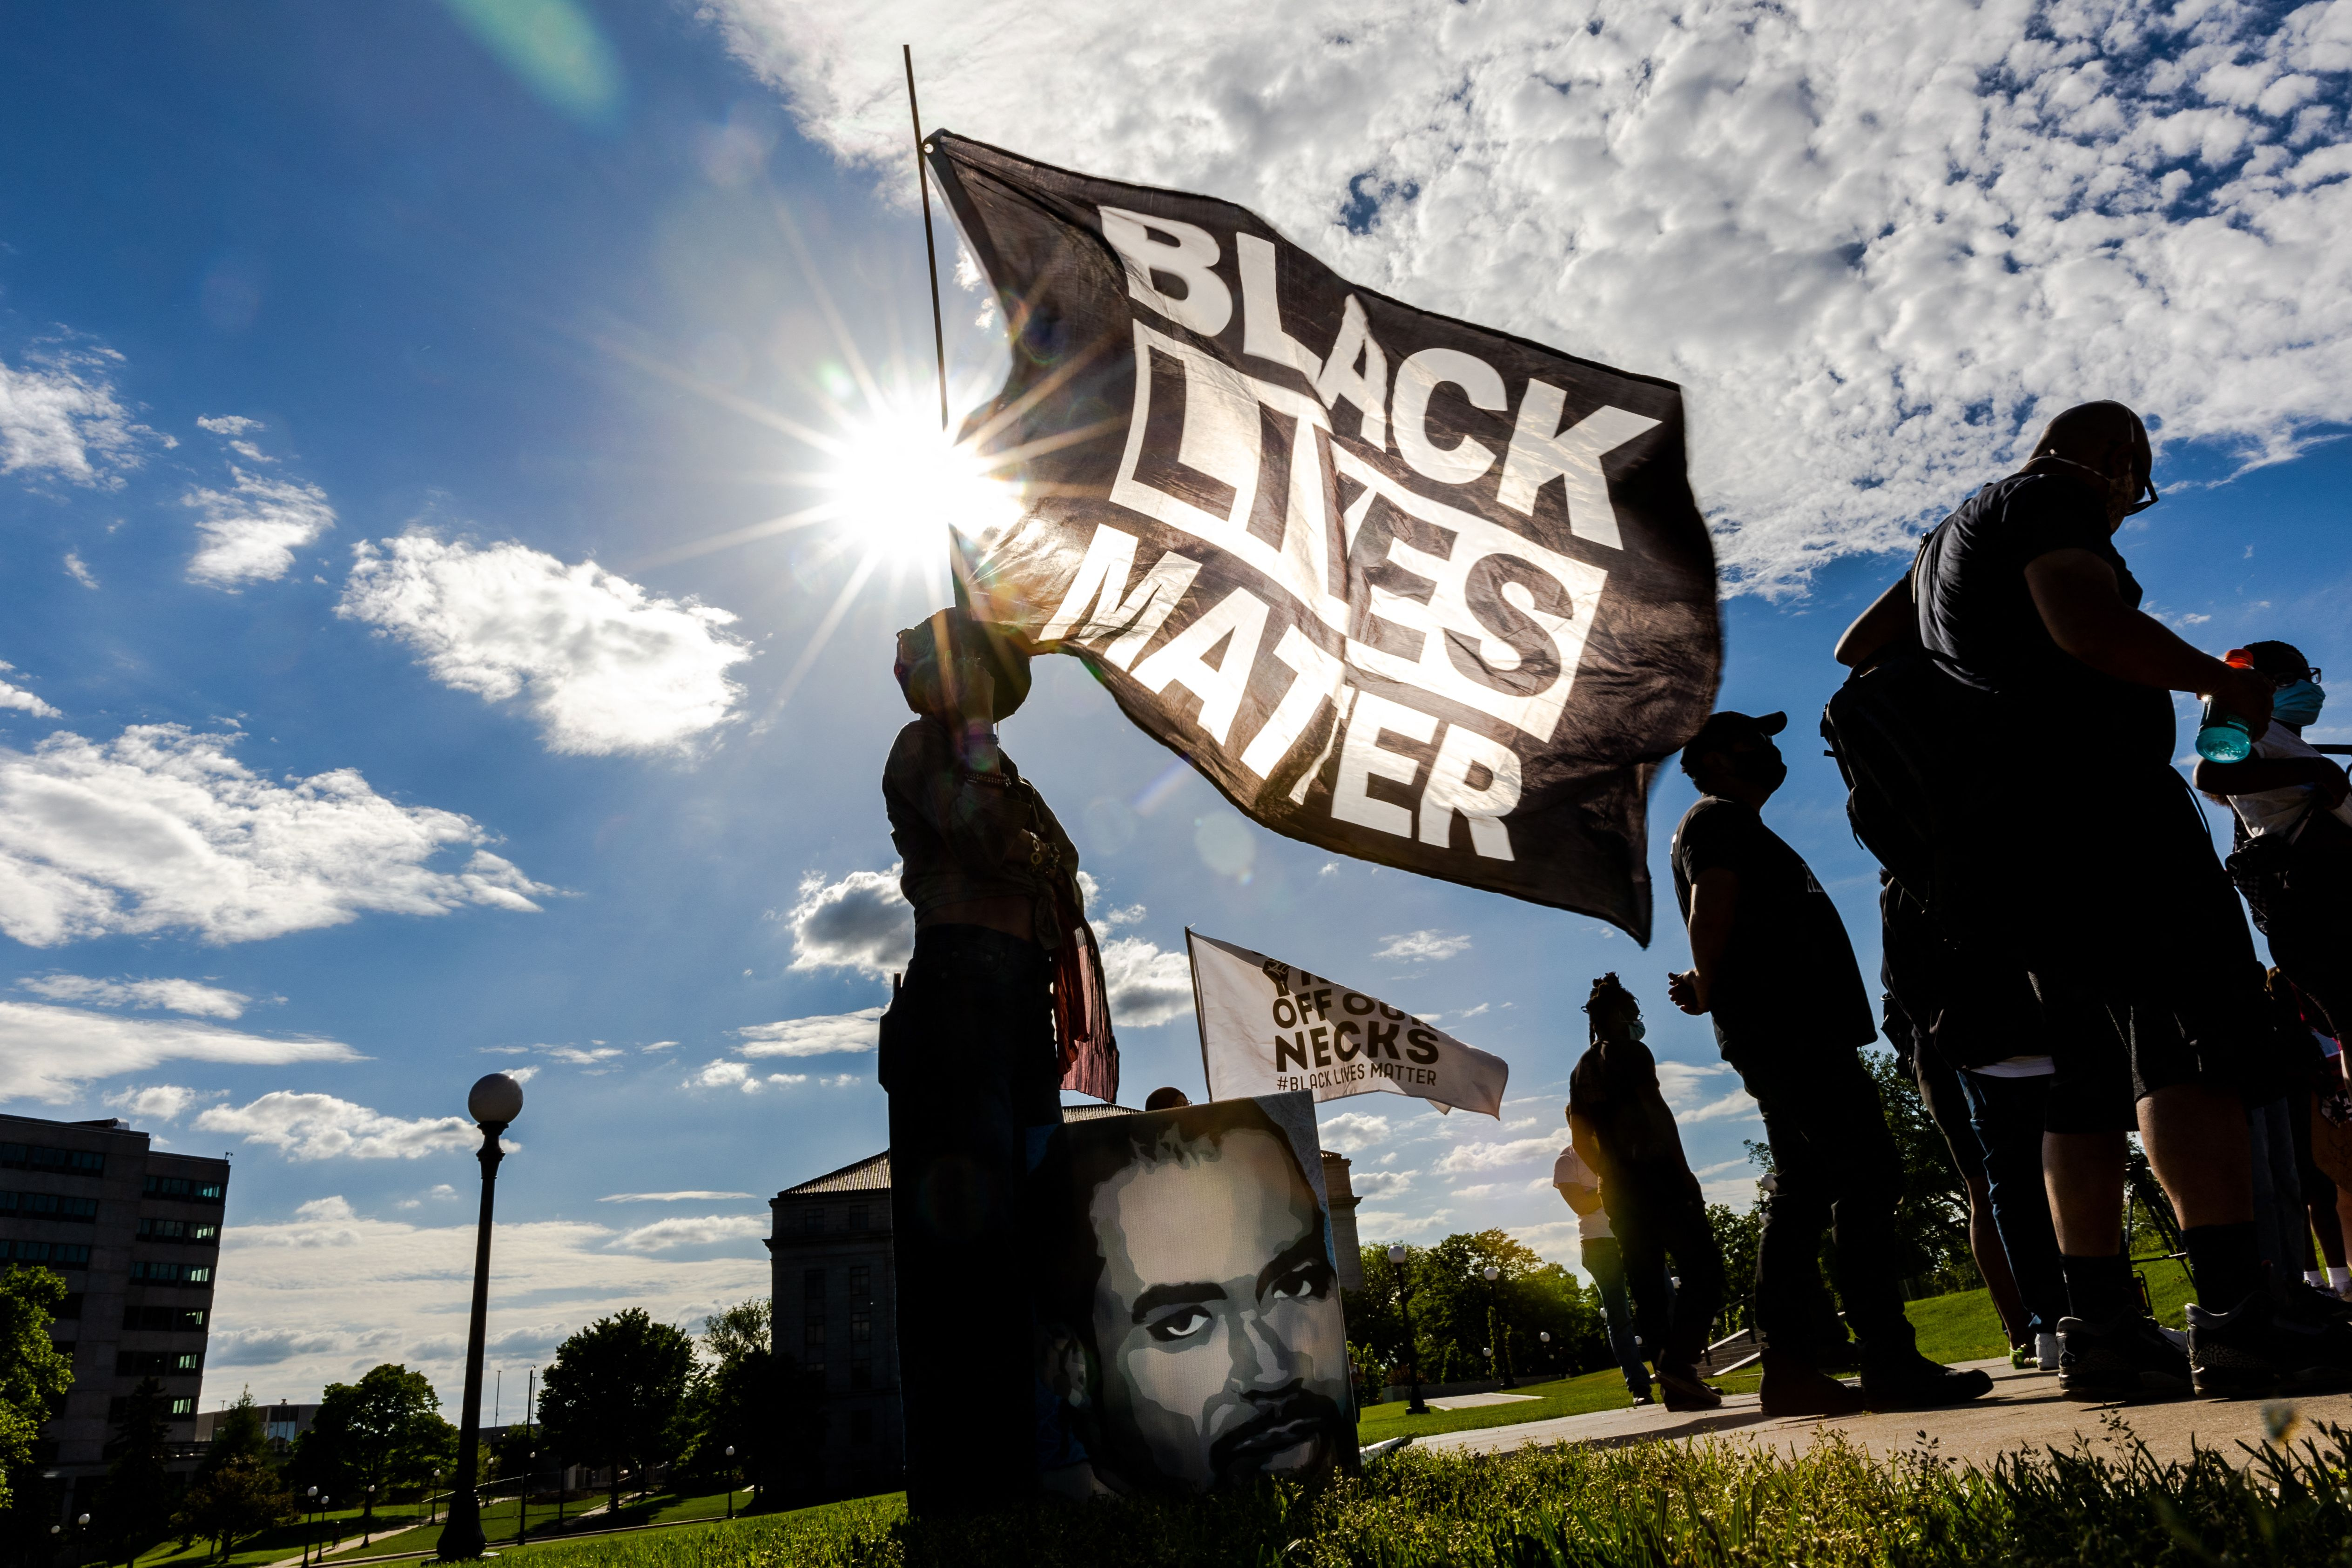 """A Black woman holds up a giant black flag, with """"Black Lives Matter"""" written on it in white. She, and the flag, are framed by the sun, which is shining brightly in a blue sky."""